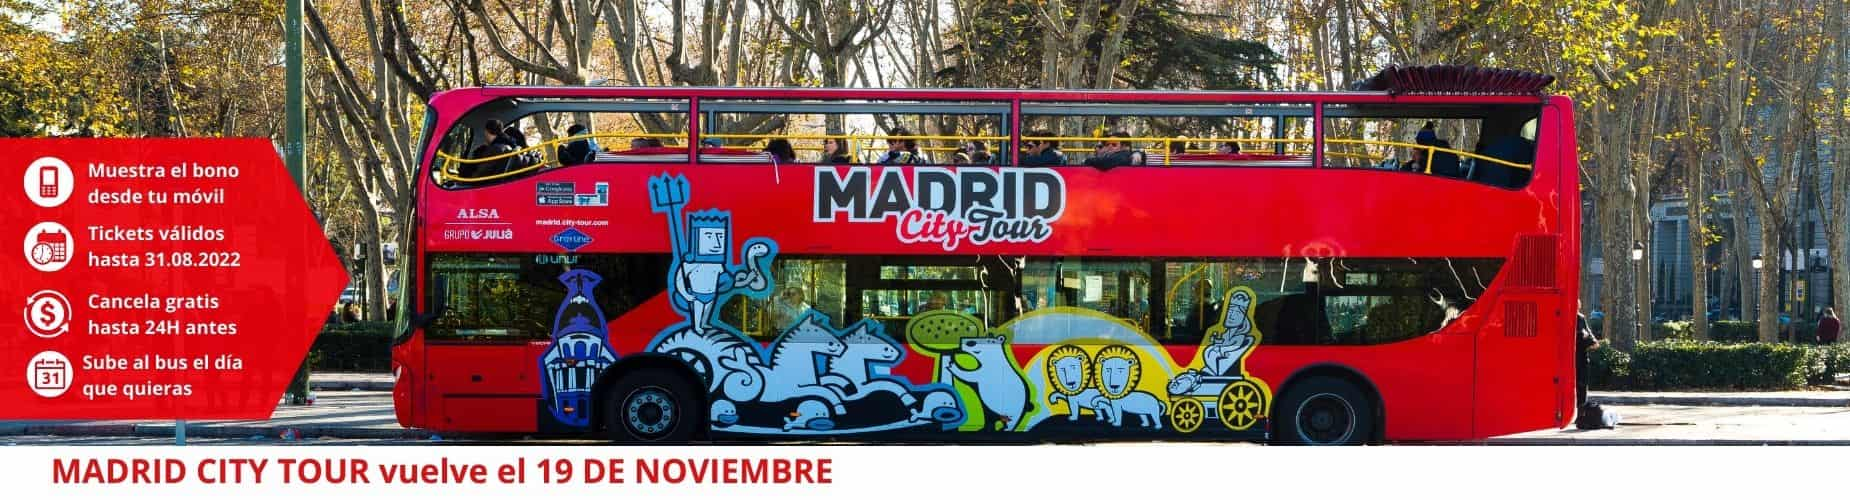 Cancelacion gratis Madrid City Tour